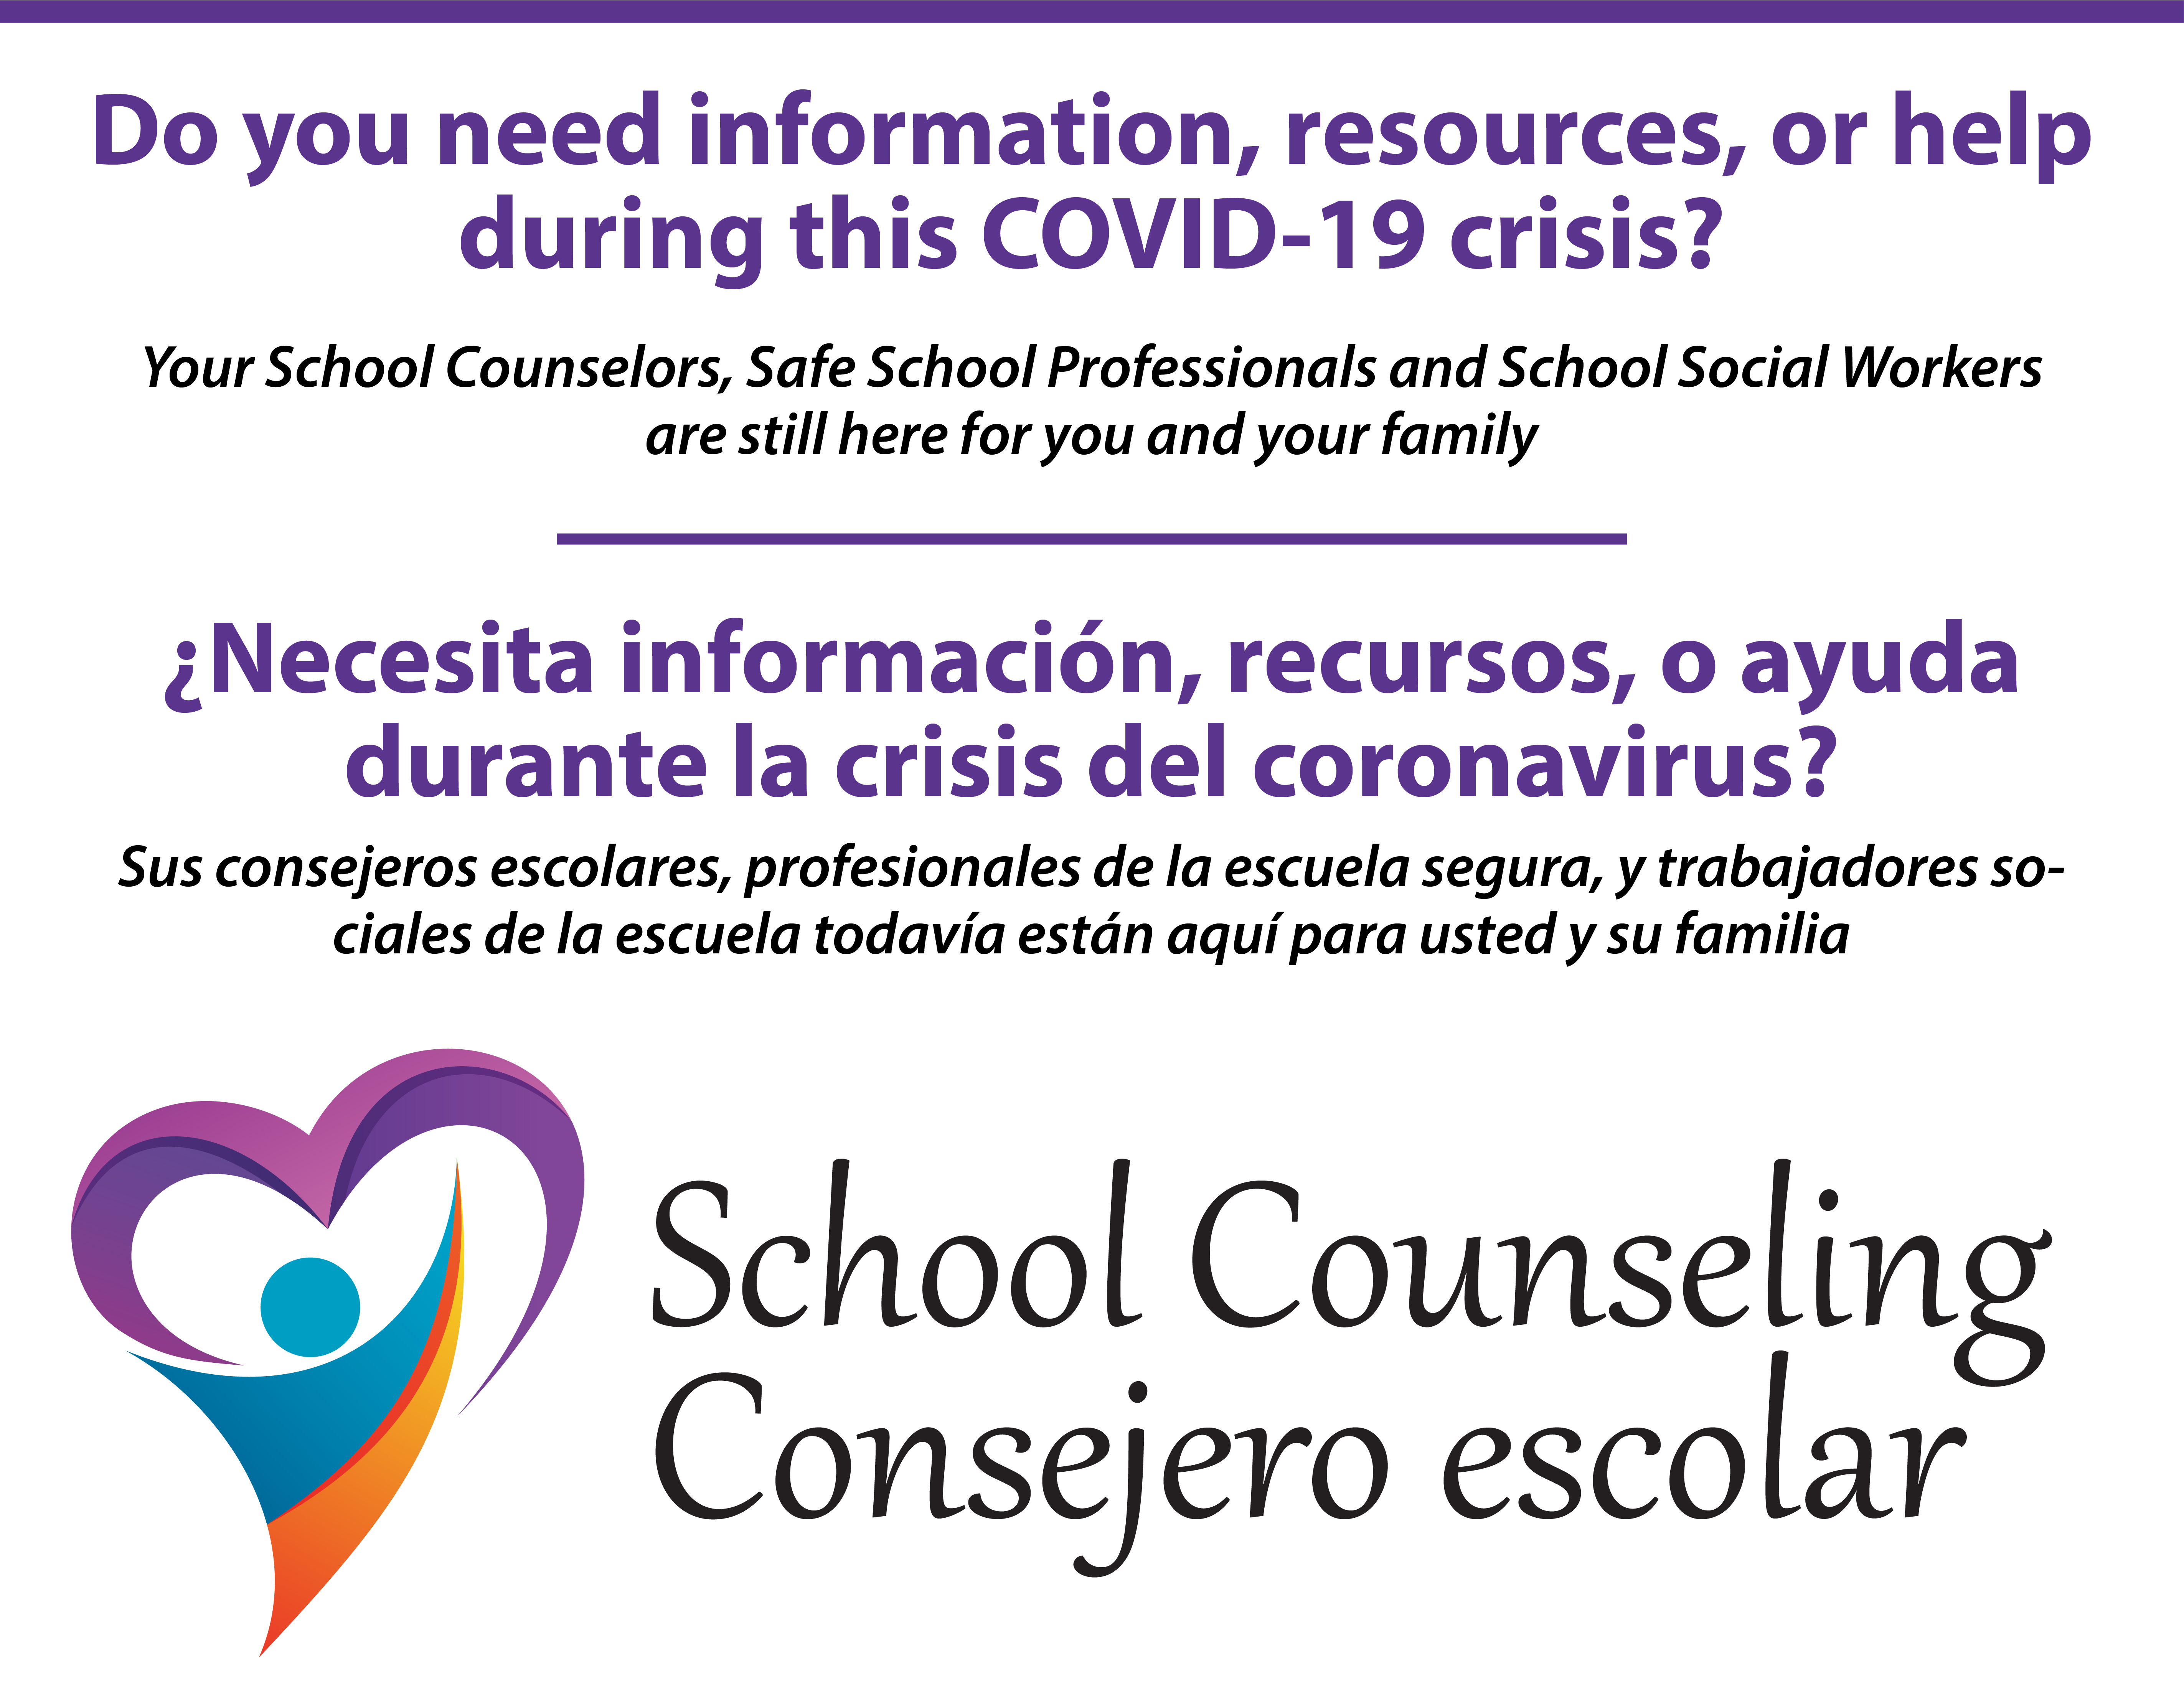 School counselors are here for you during the Covid-19 crisis.